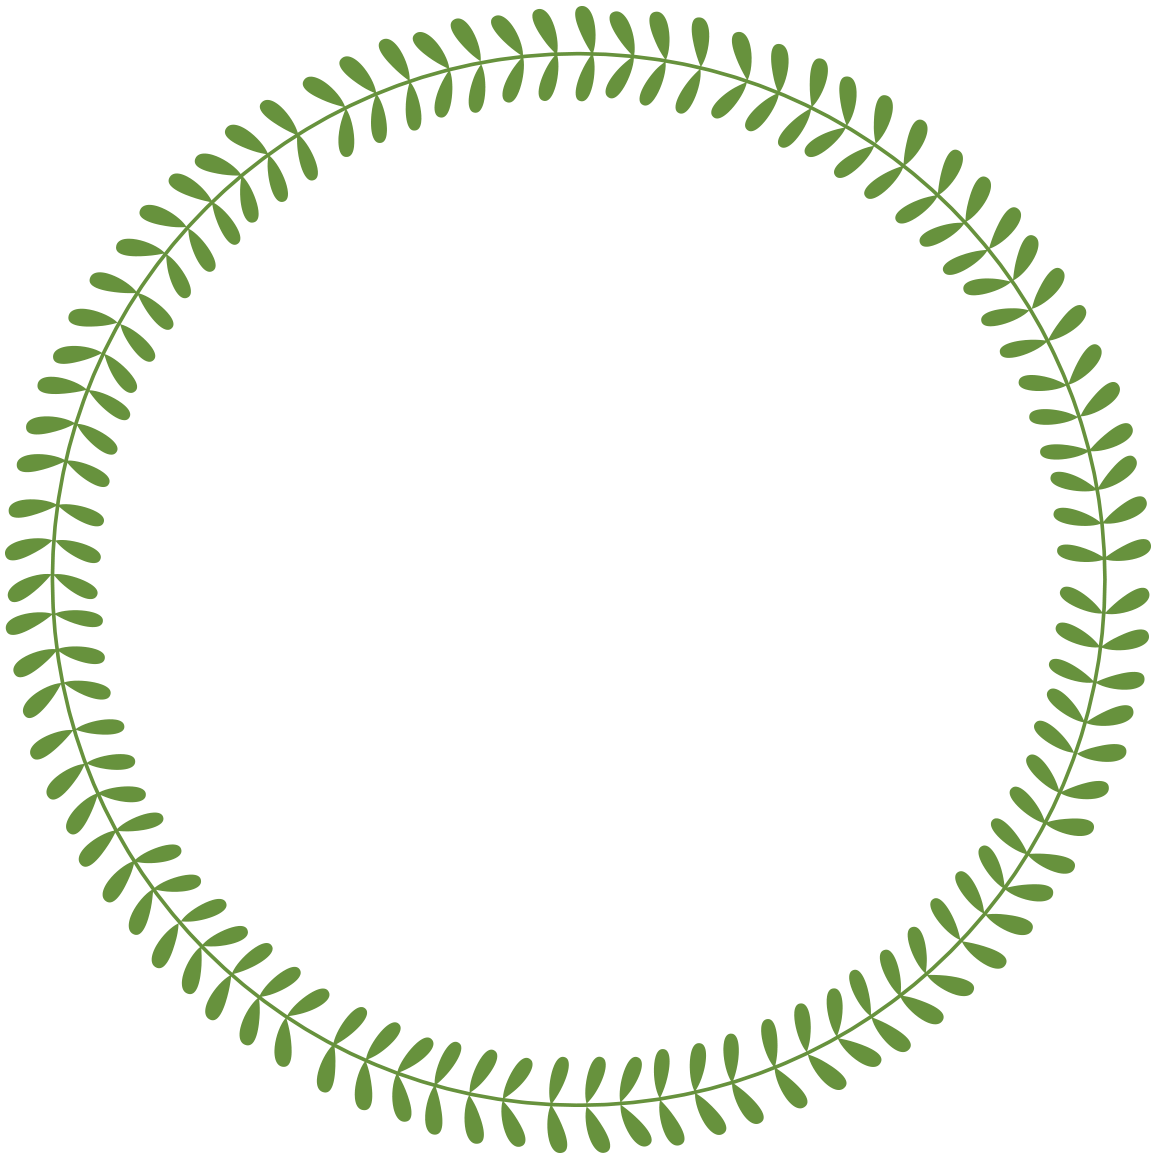 Circle clipart vine. Free laurel frames arrows